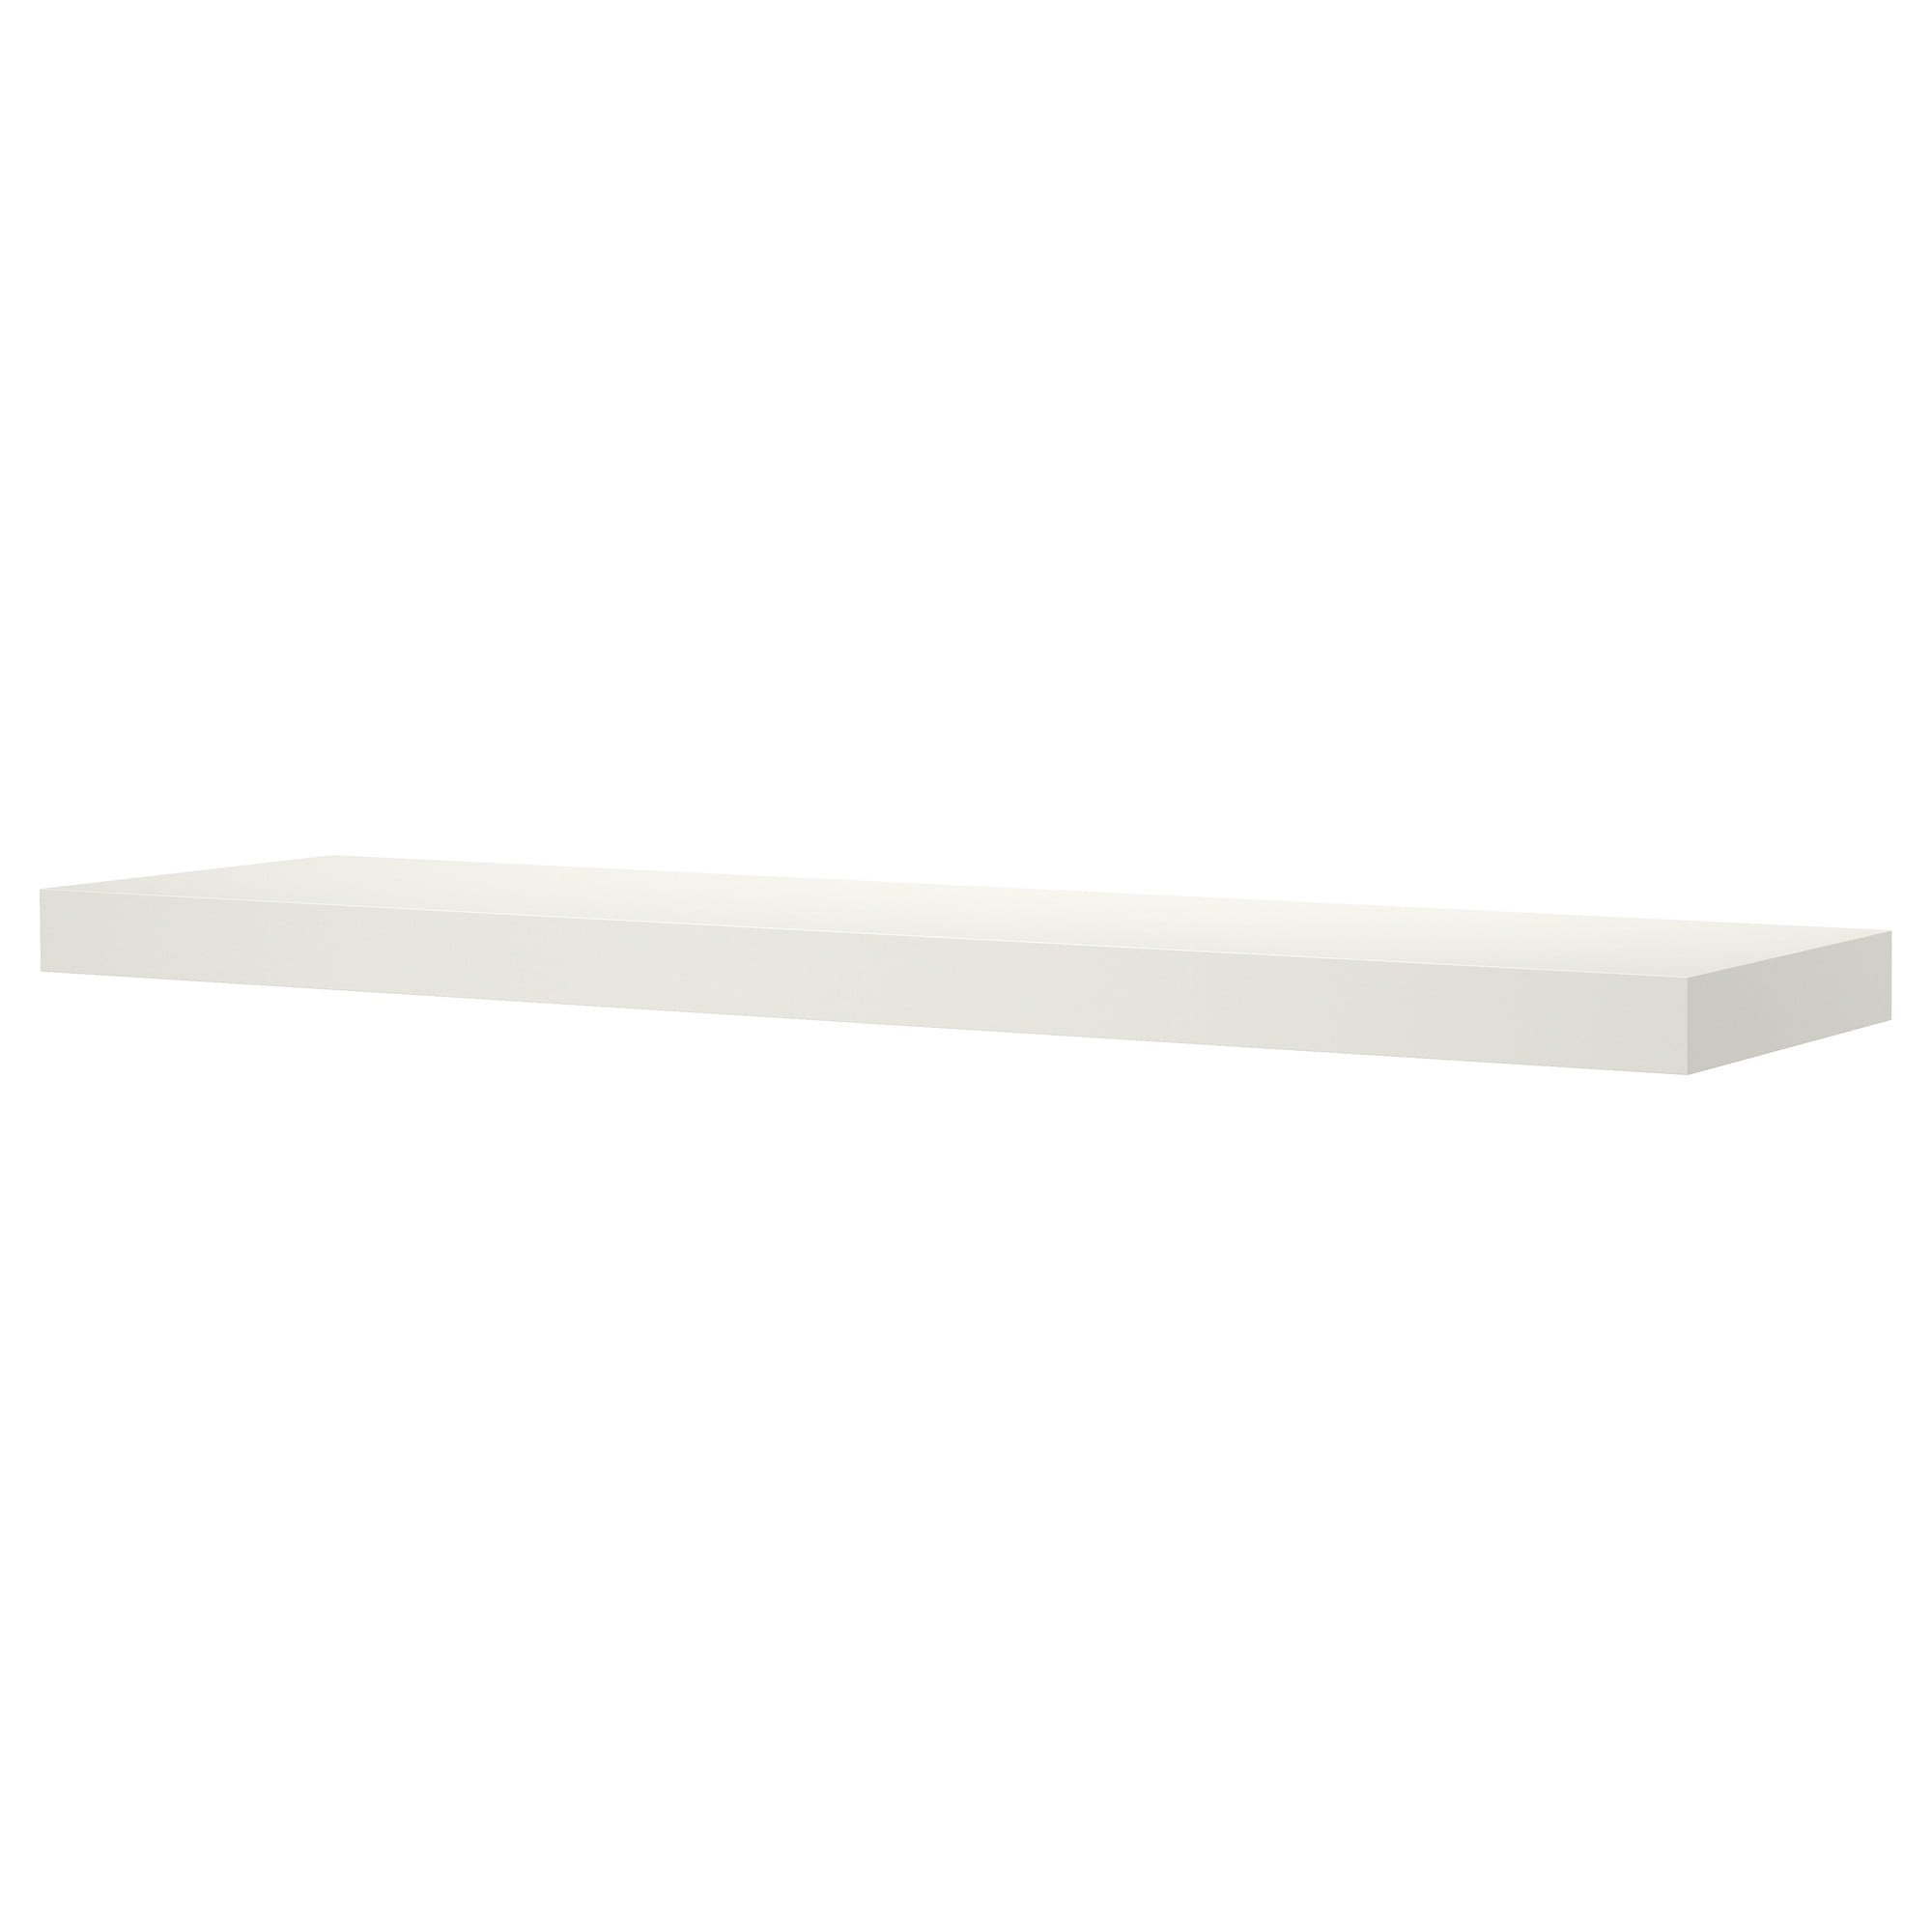 White Floating Wall Shelf lack wall shelf - white - ikea